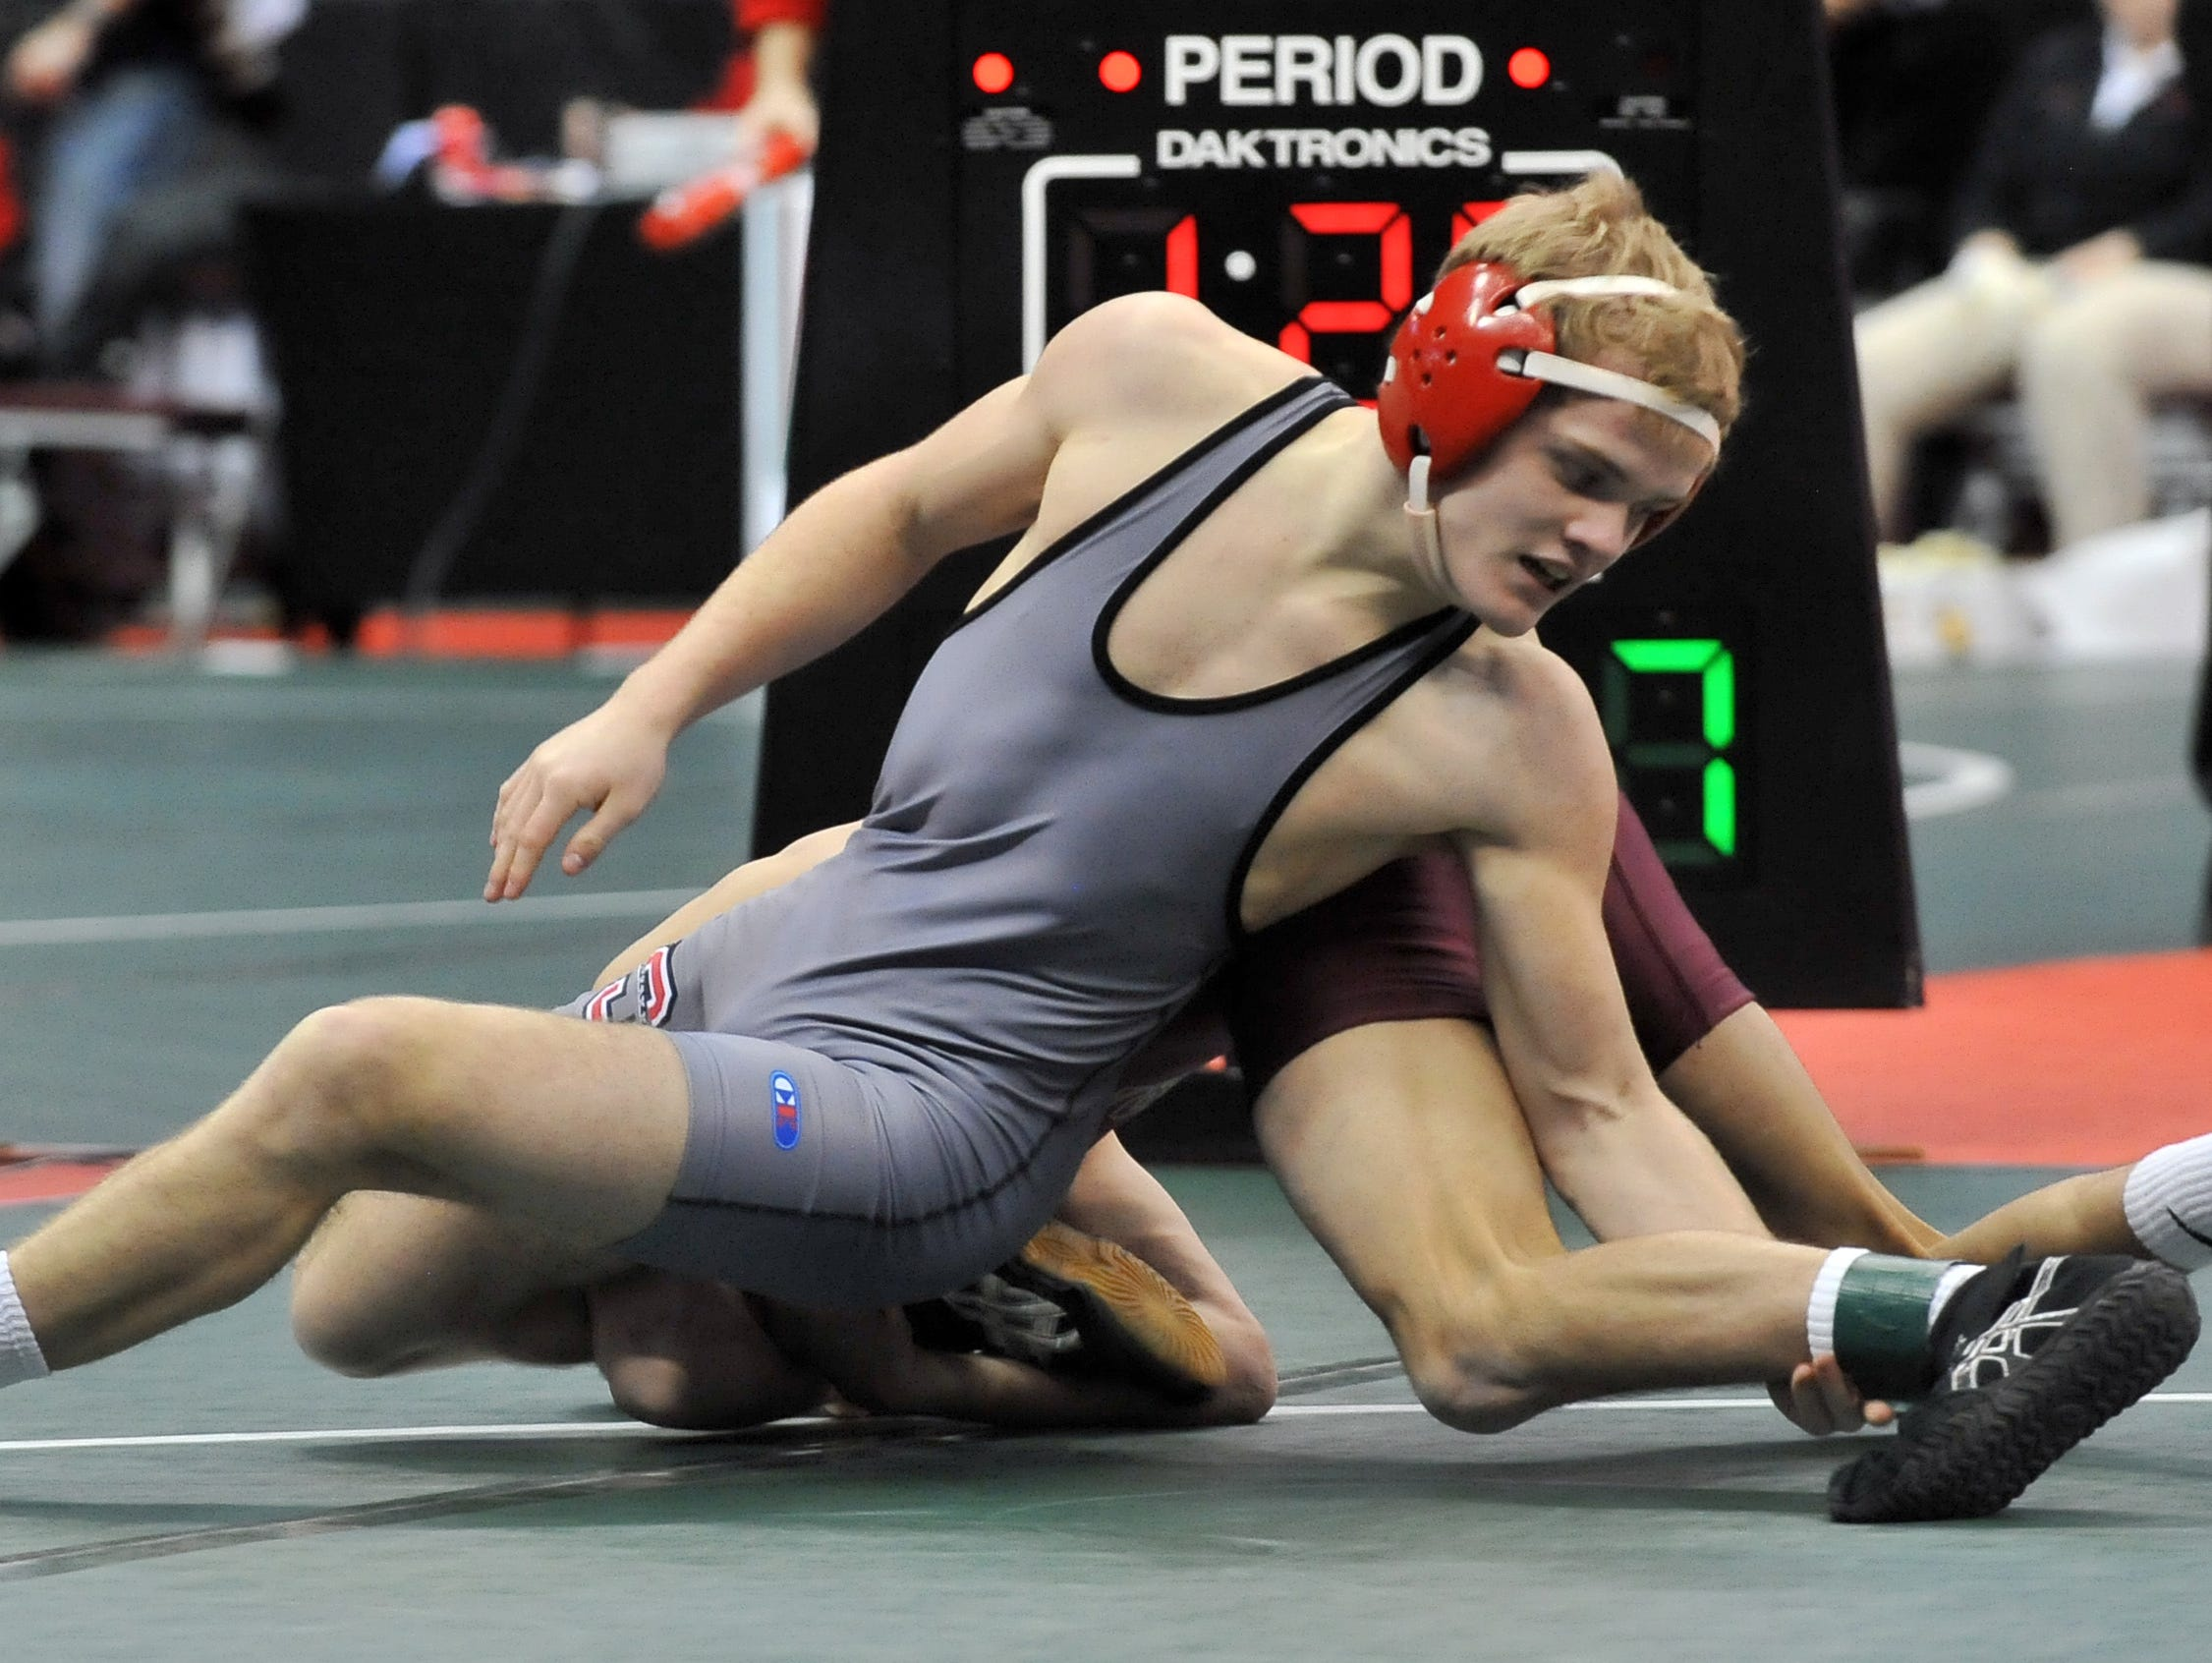 Sheridan's Nathan Kehn wrestles during the Division II state wrestling tournament Thursday, March 12, 2015, at the Jerome Schottenstein Center in Columbus.